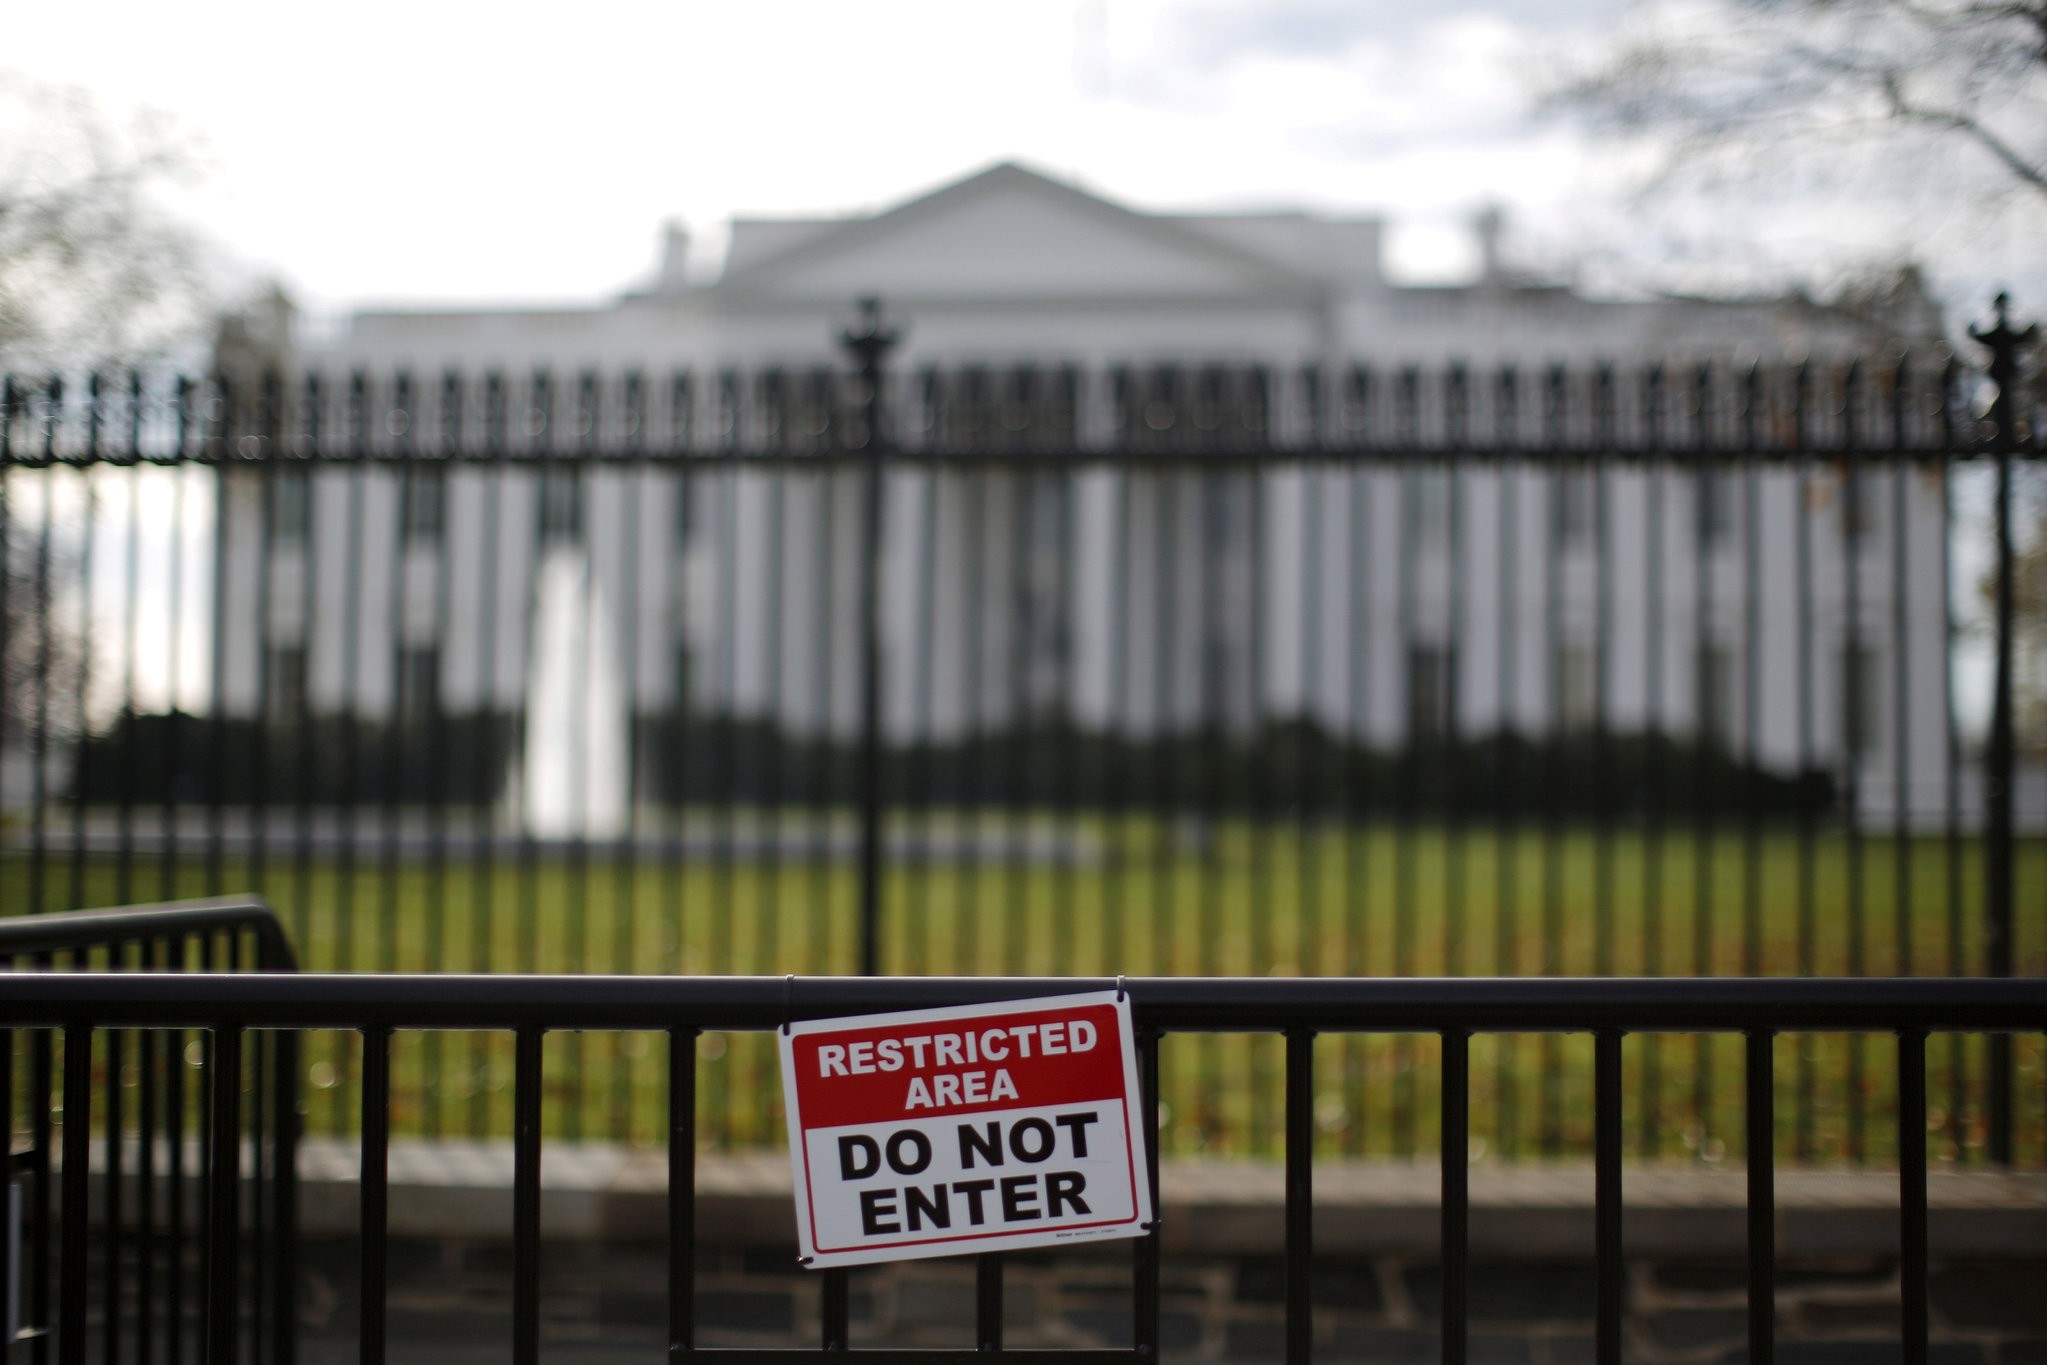 A restricted area sign is seen outside of the White House in Washington November 27, 2015. (REUTERS Photo)